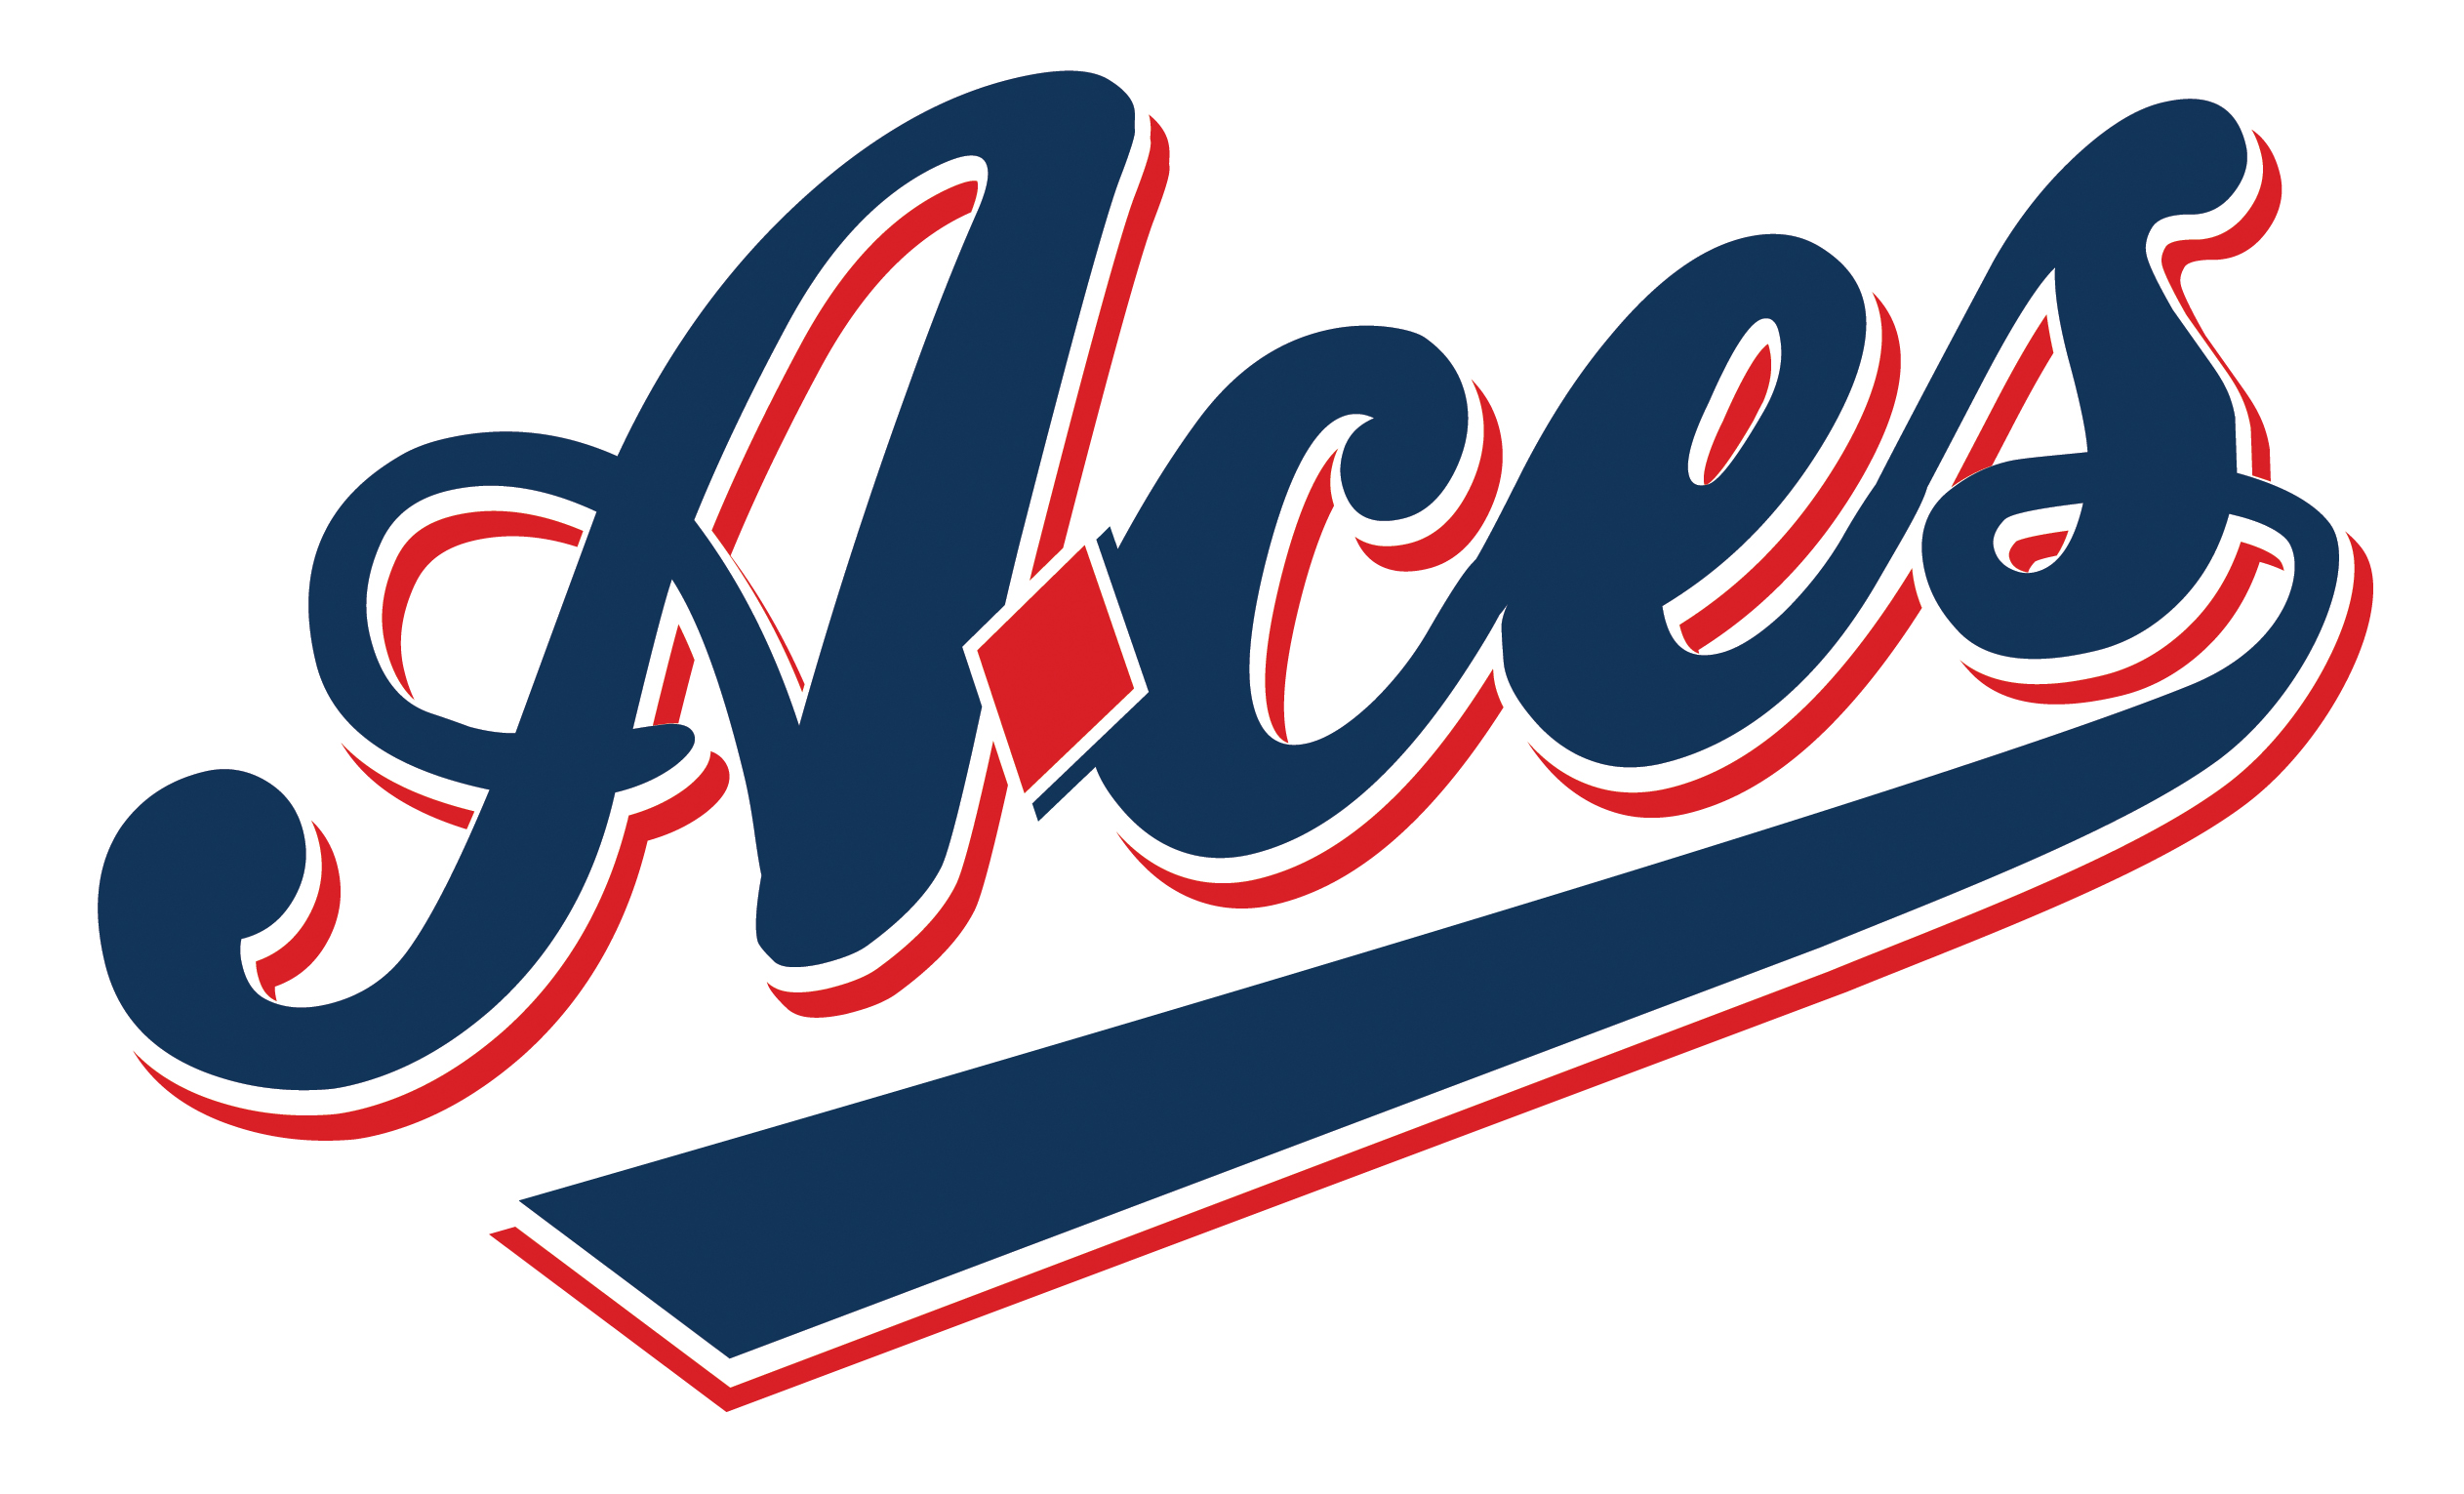 Aces Logo likewise Carlos Carrascos Wife Karelis Carrasco together with Unders also Melisa Reidy Russell Addison Russells Wife in addition Barack Obama. on salazar baseball